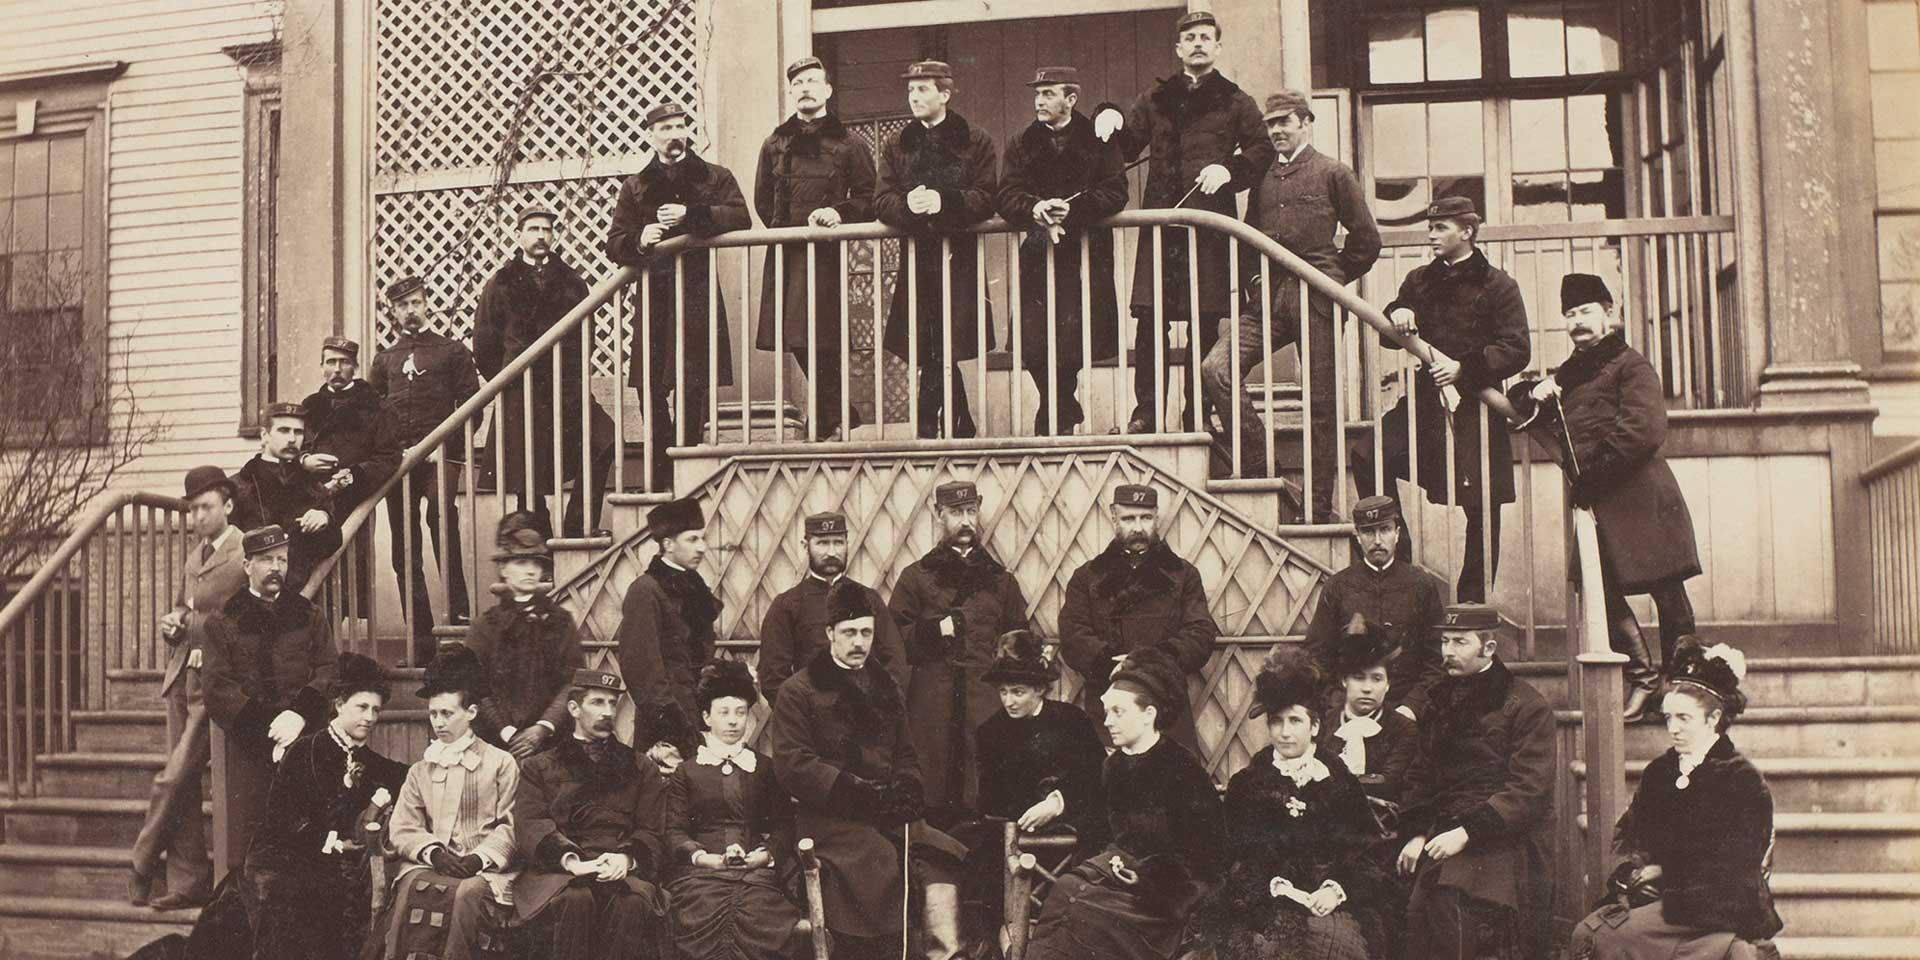 Officers of the 97th Regiment at Halifax, Nova Scotia, c1880